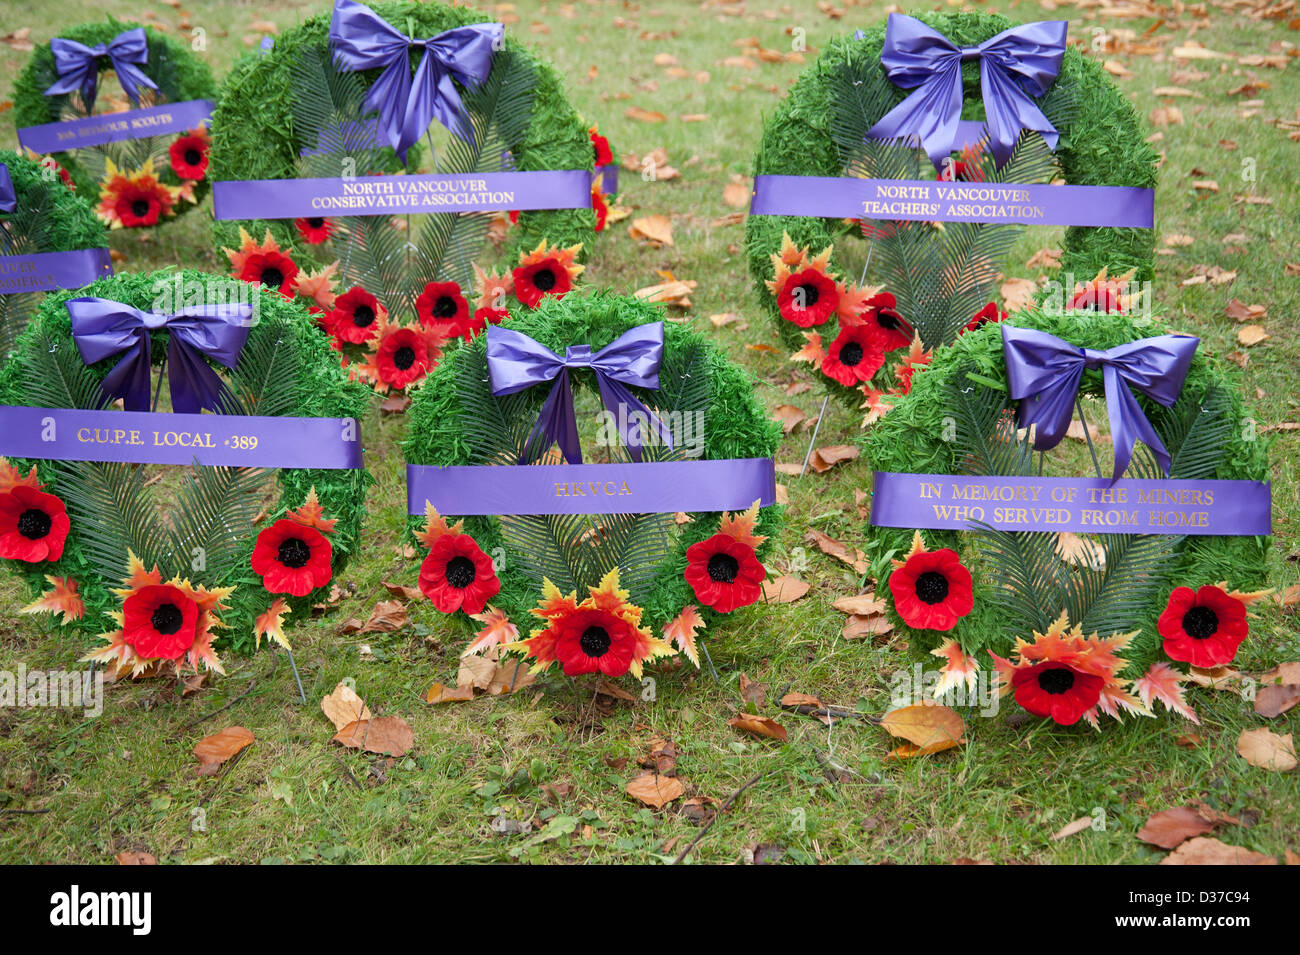 Remembrance Day wreaths with poppies laying in the grass - Stock Image